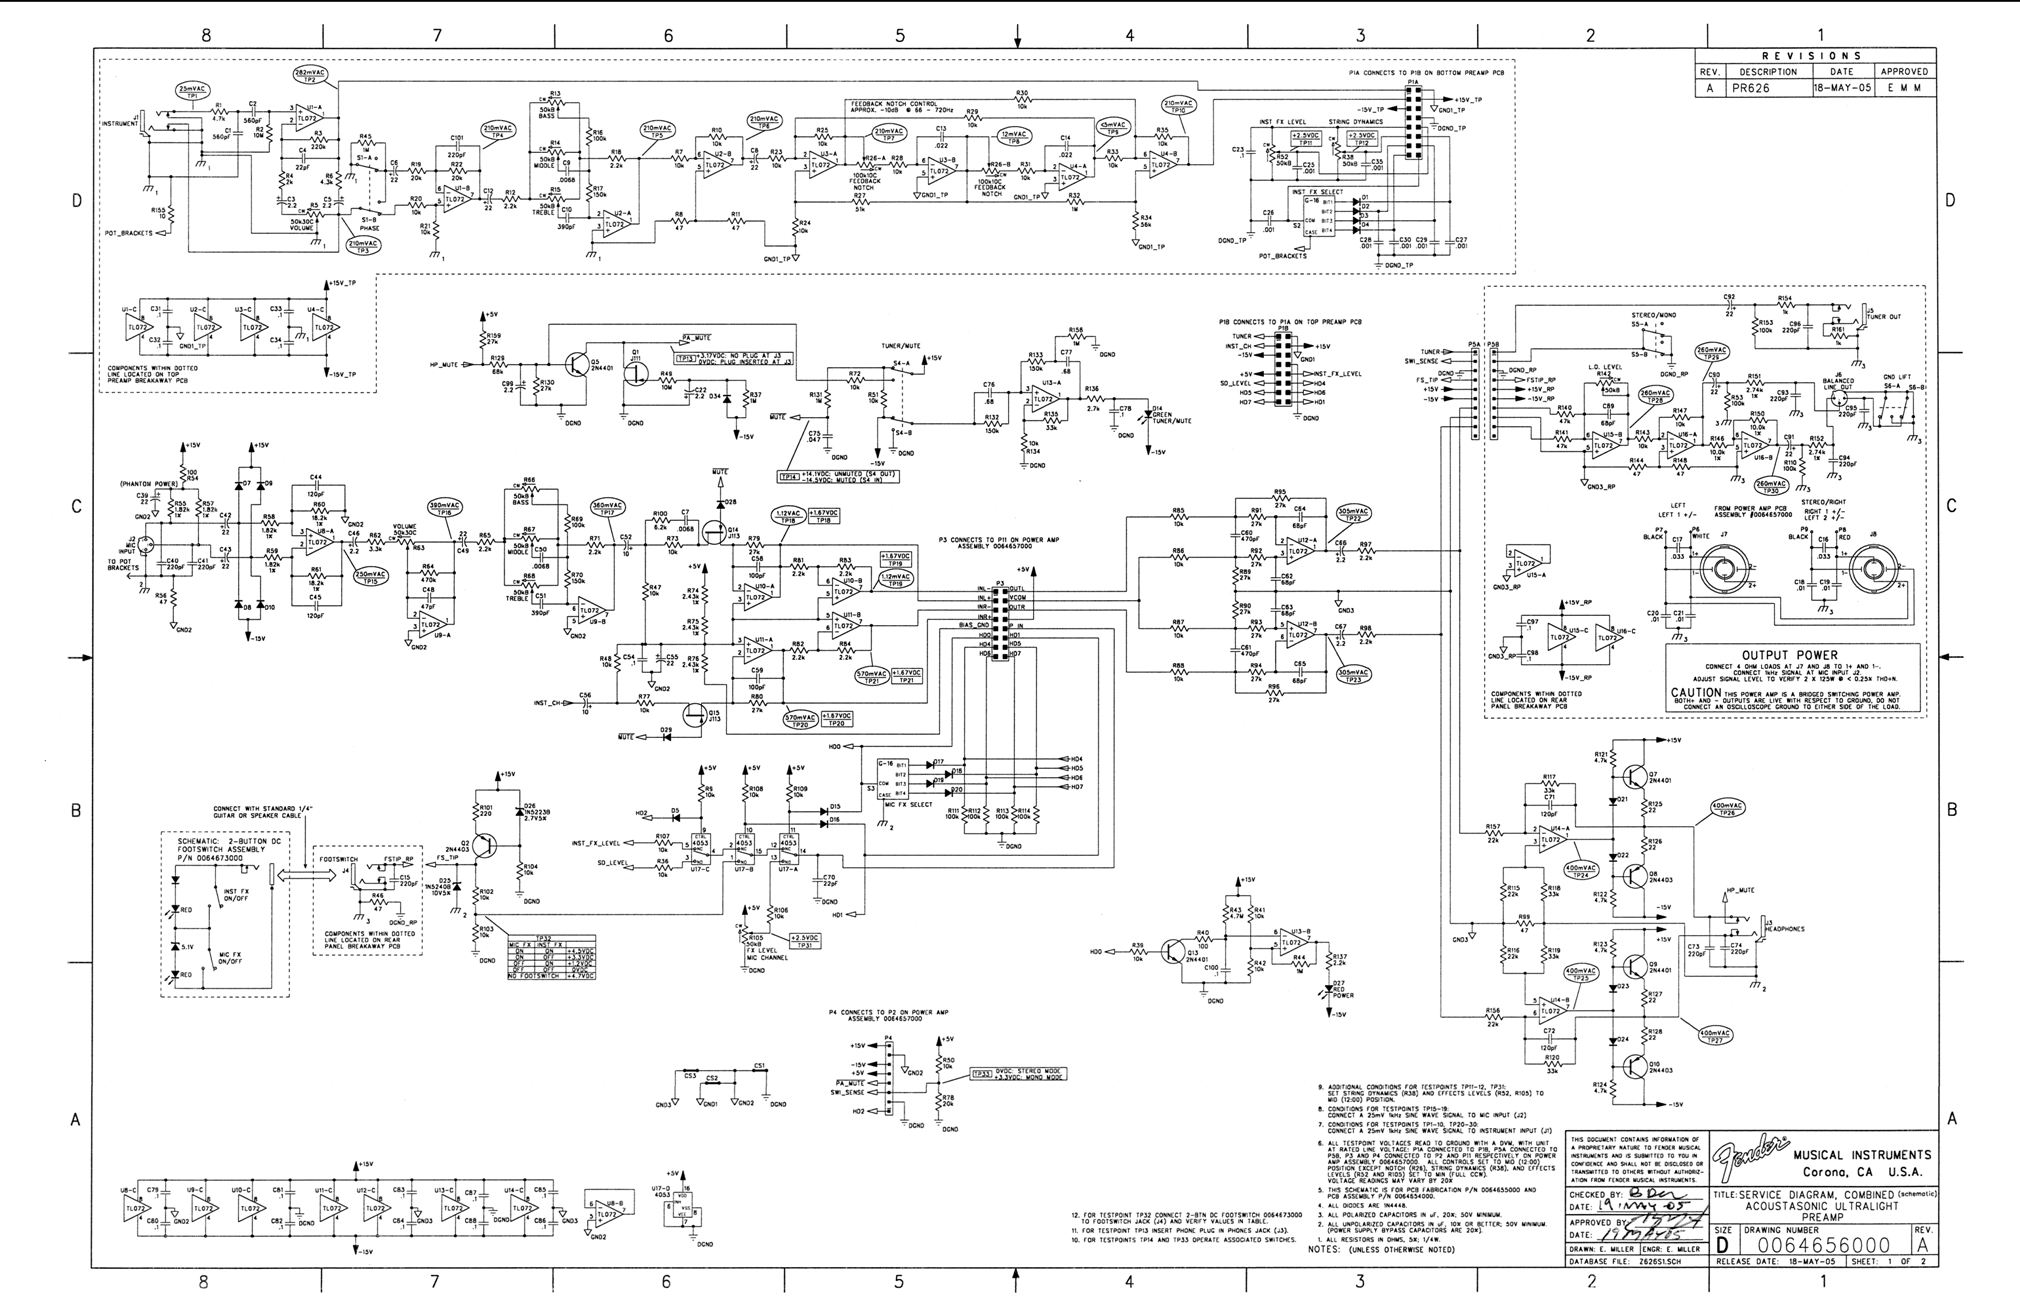 Click image for larger version. Name:  Acoustasonic_Ultralight_Preamp_Schematic.jpg Views: 2233 Size: